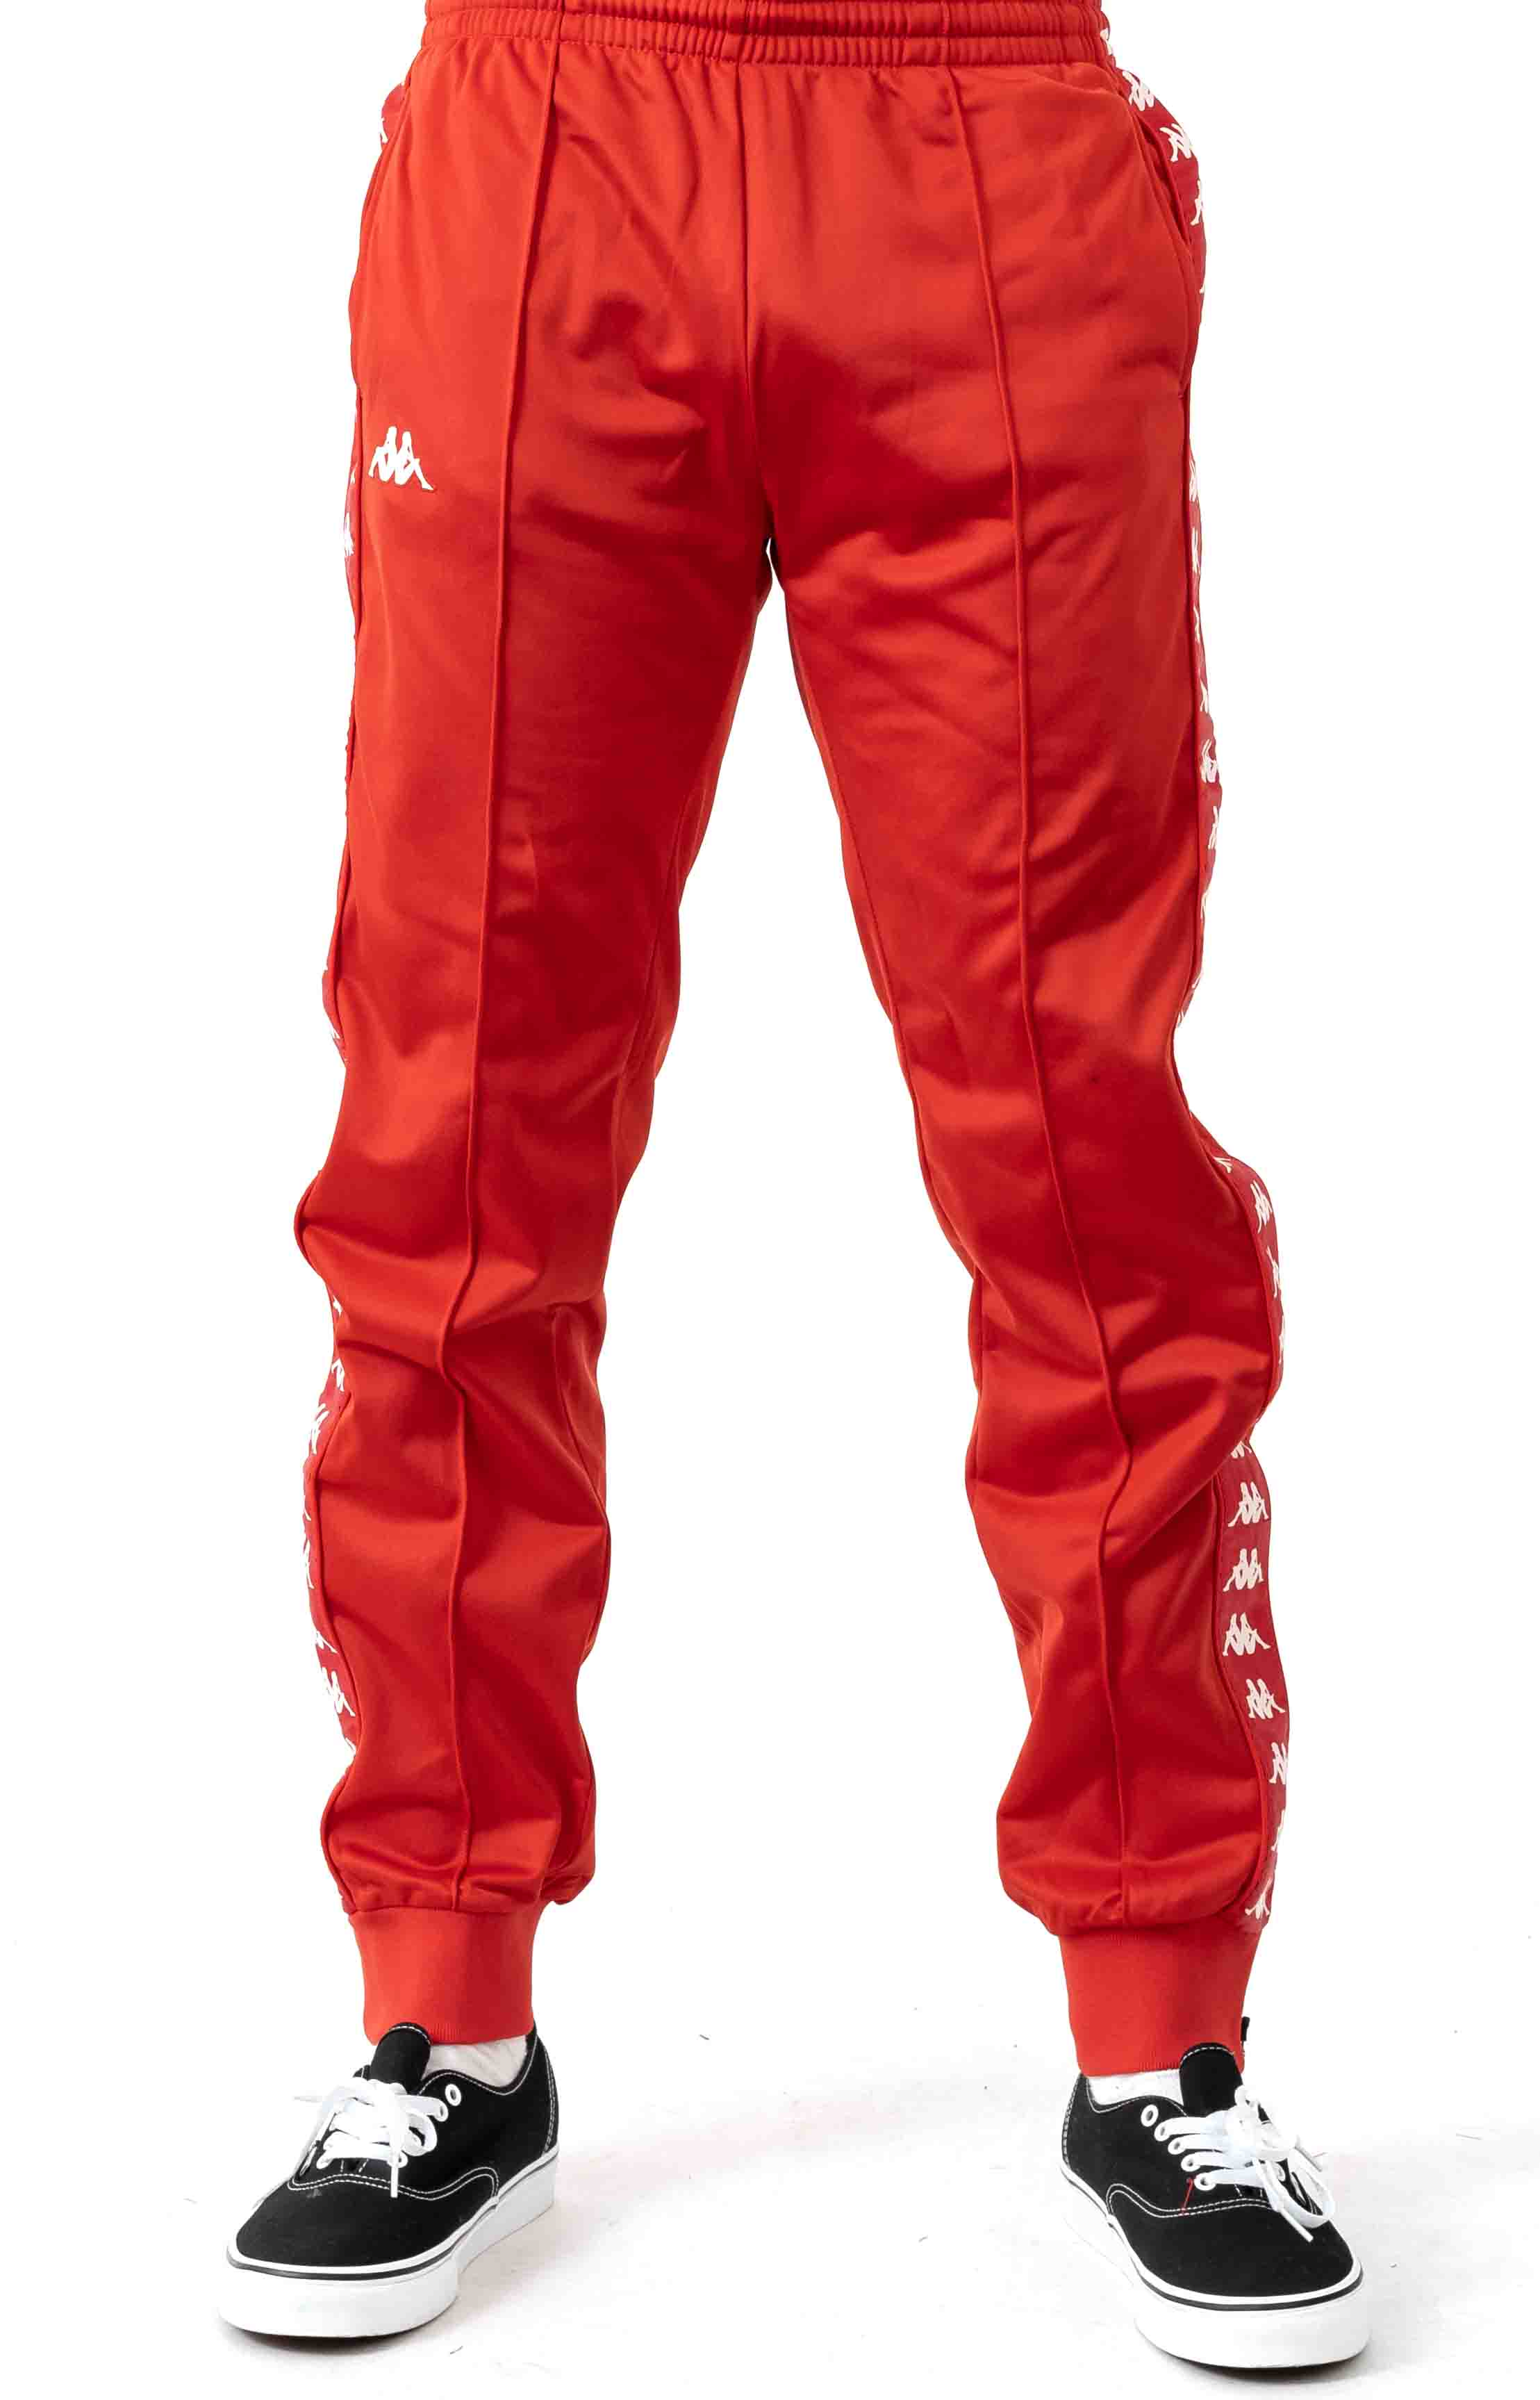 222 Banda Rastoriazz Trackpant - Red/White